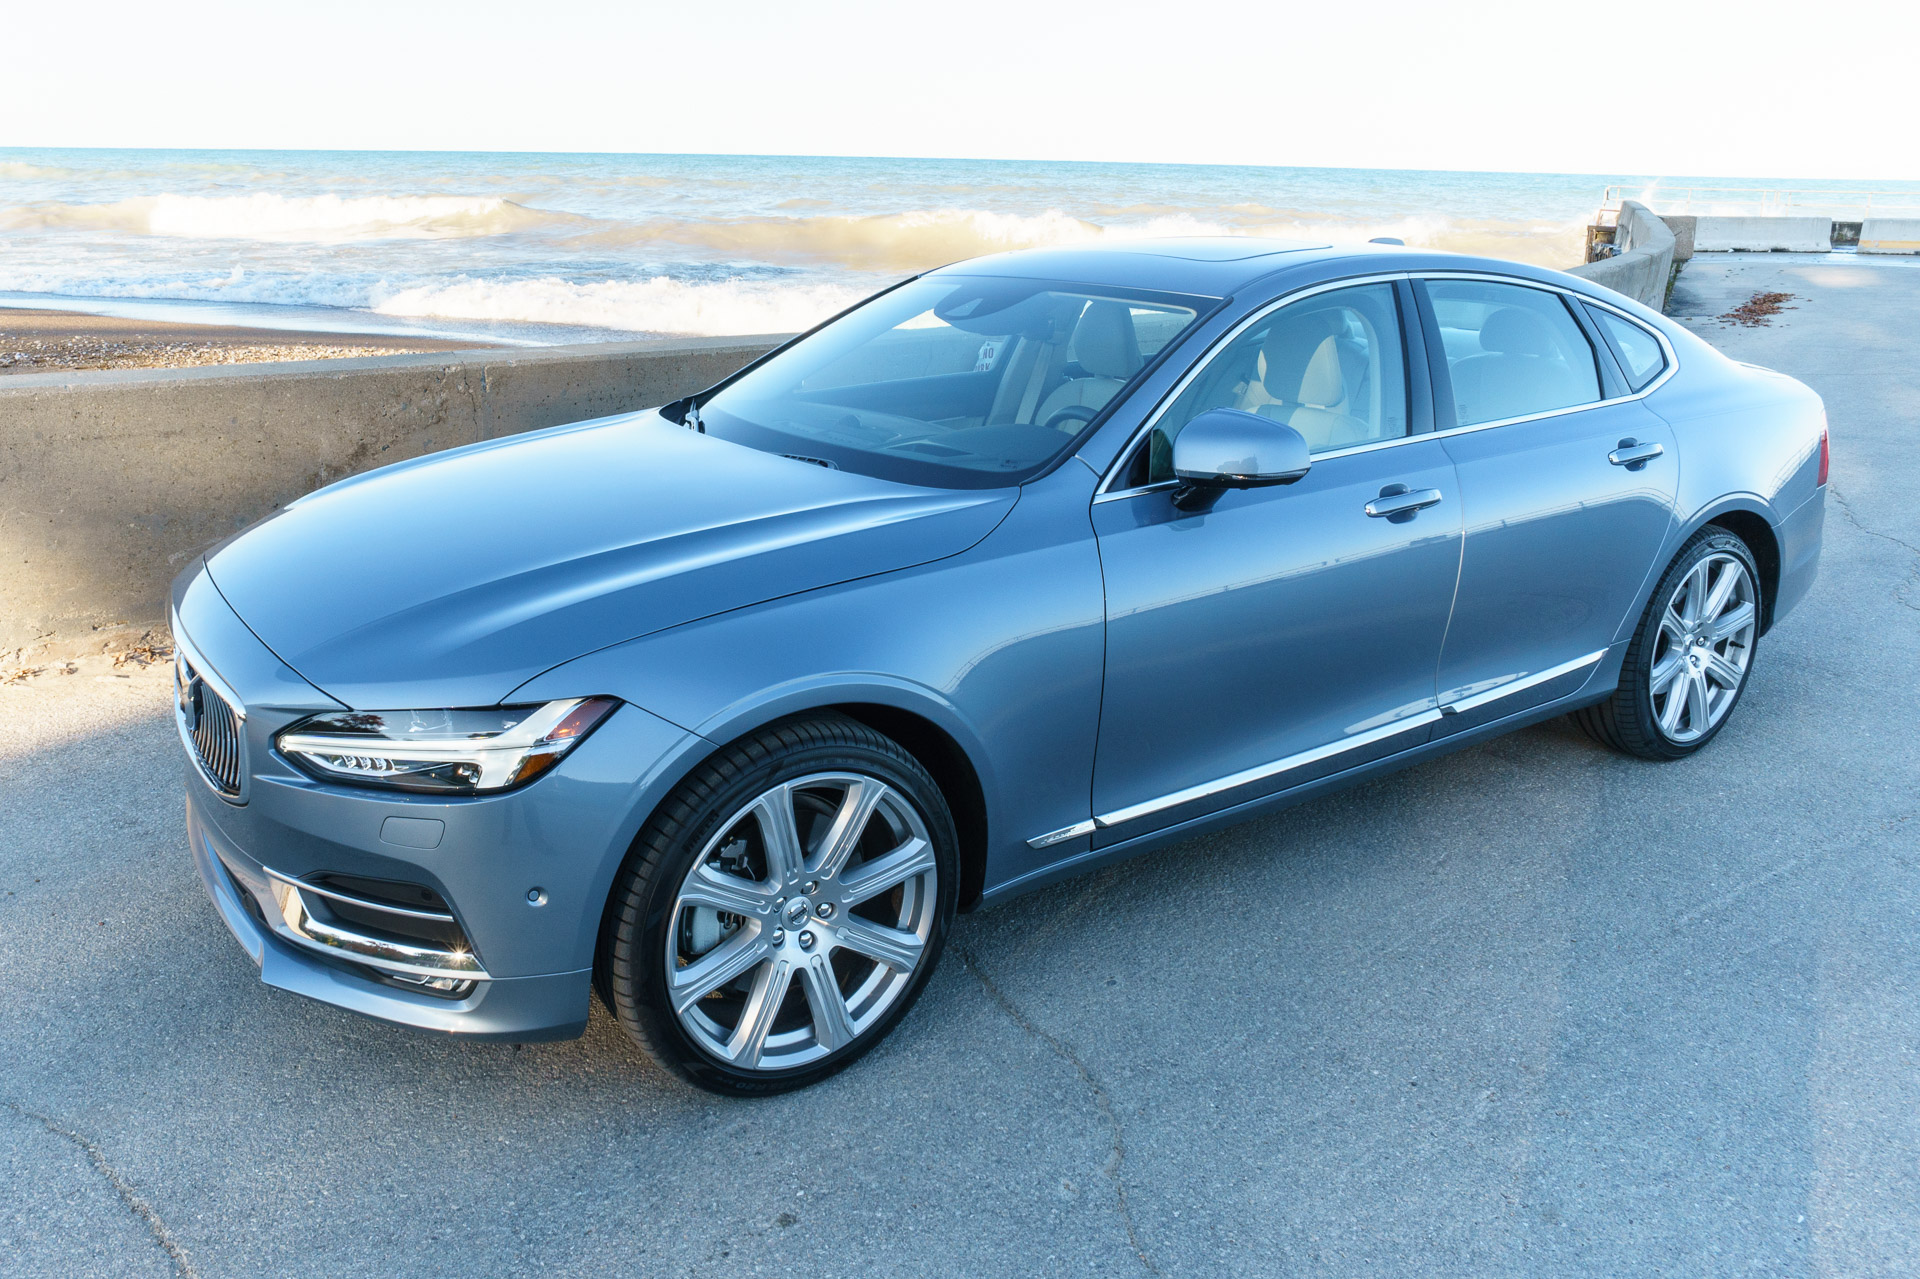 Review: 2017 Volvo S90 T6 AWD Inscription